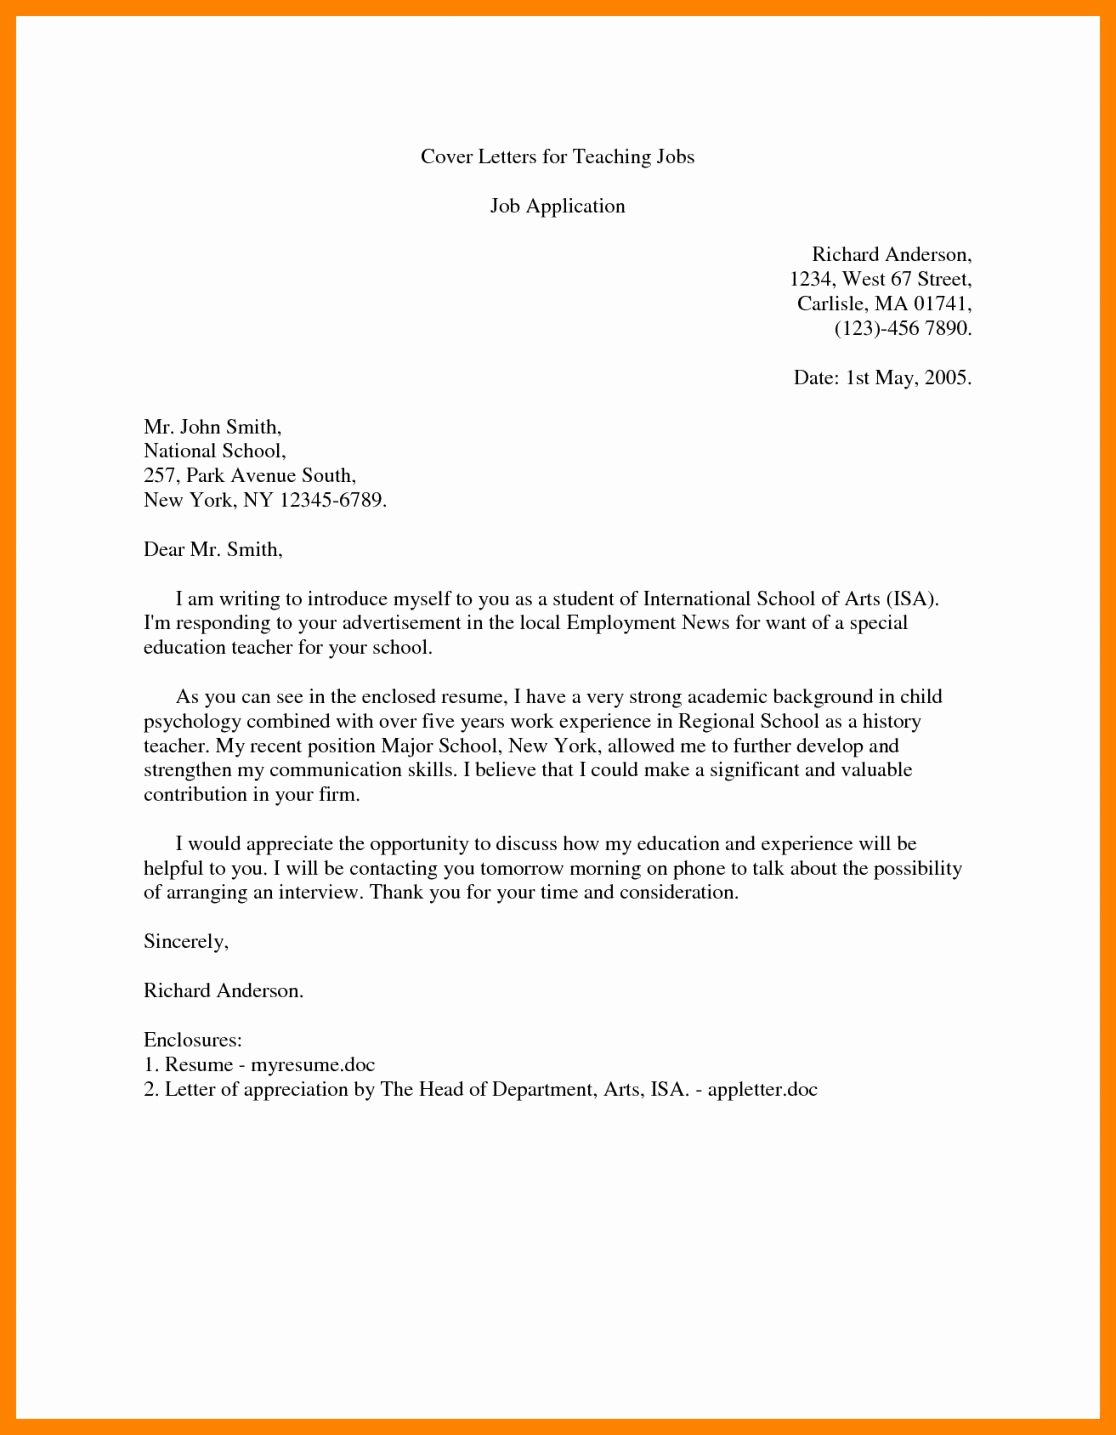 Letter Of Introduction Template Lovely 25 Cover Letter Introduction Cover Letter Introduction